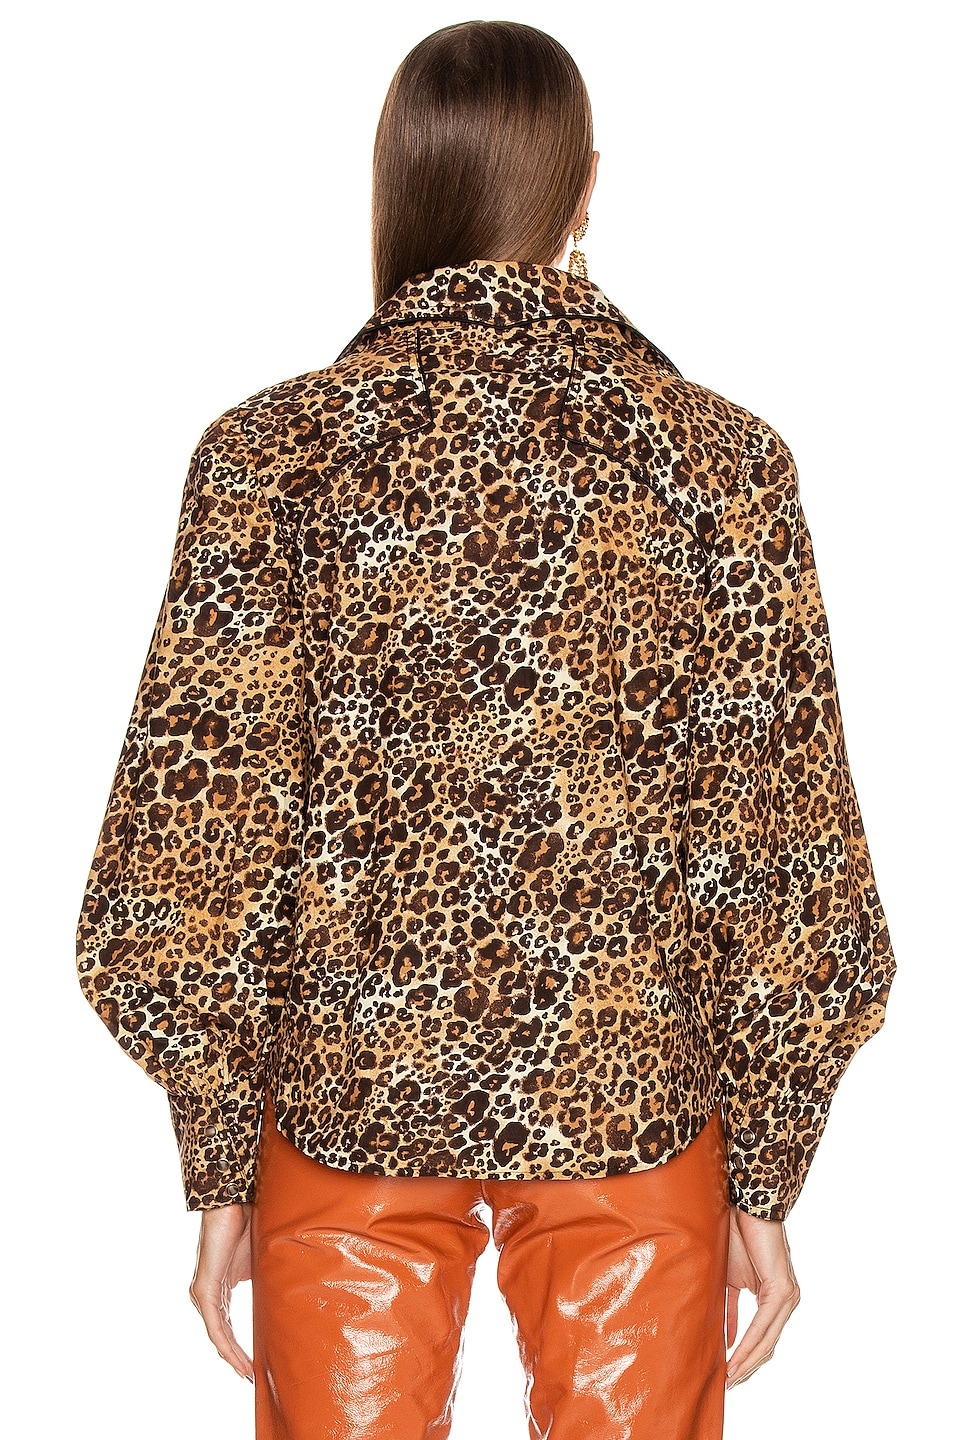 Image 3 of Johanna Ortiz African Roots Top in Leopard Classic